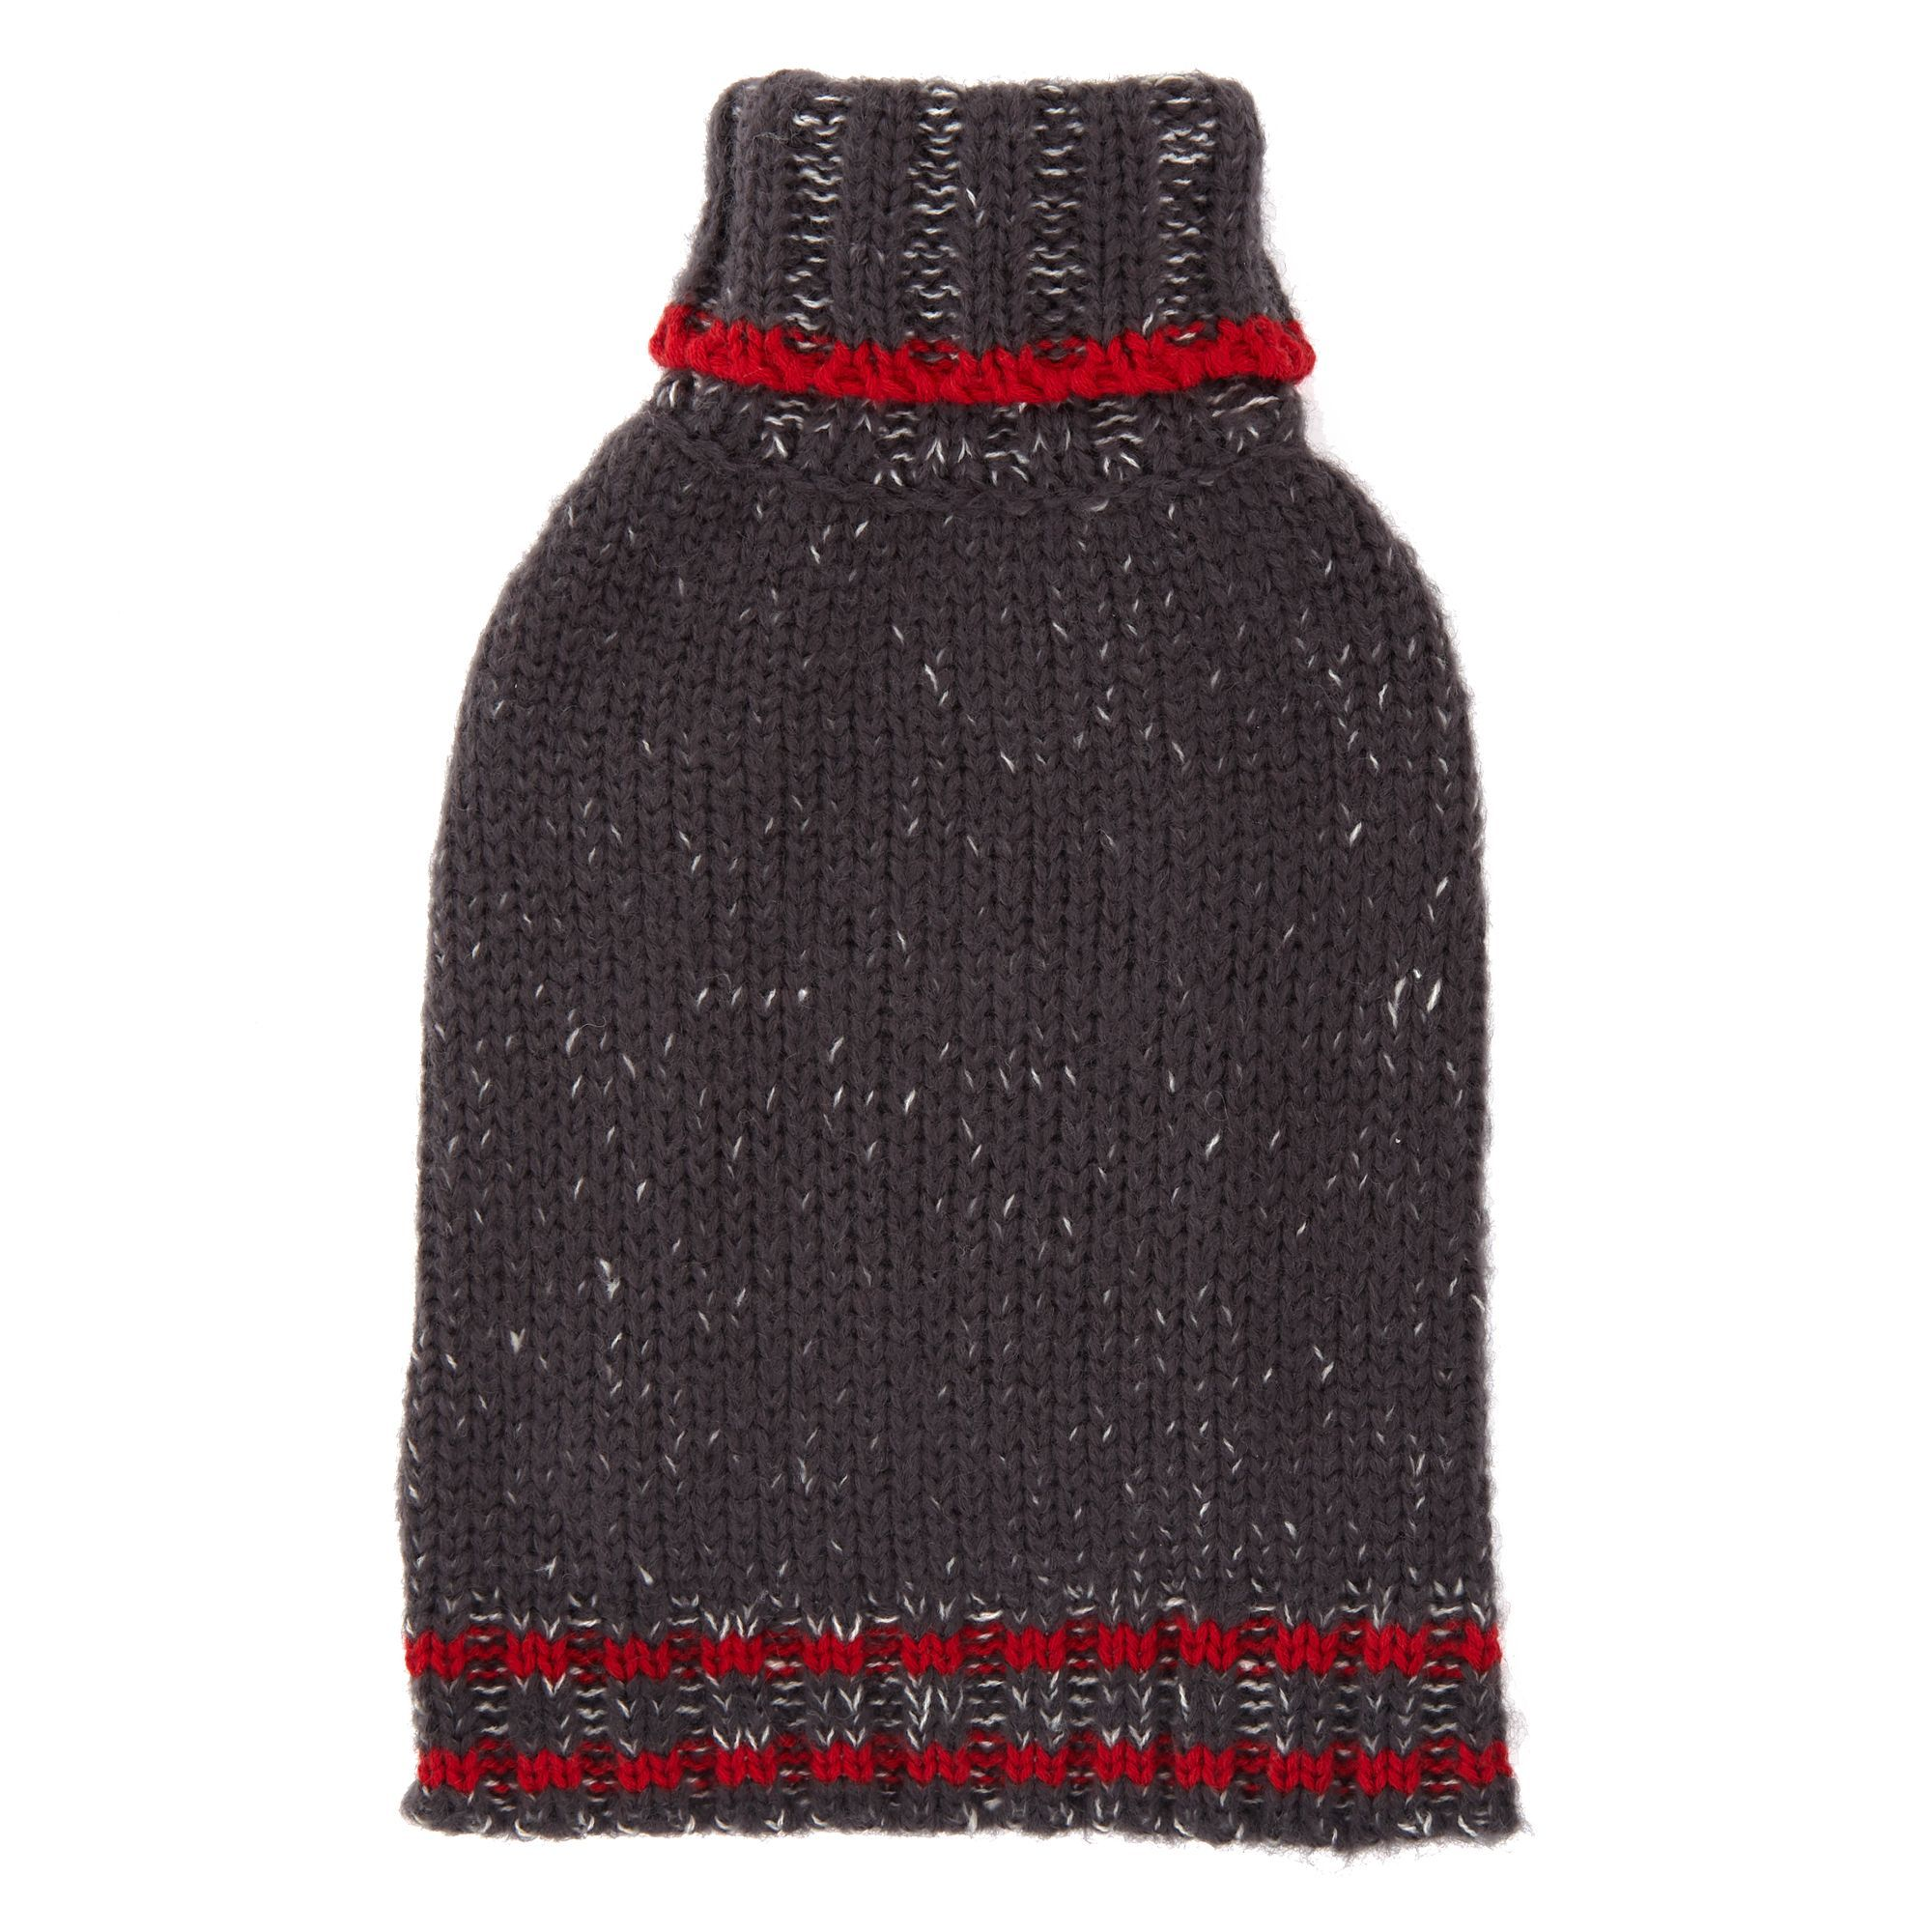 Top Paw Marled Knit Pet Sweater size X Large Clothes